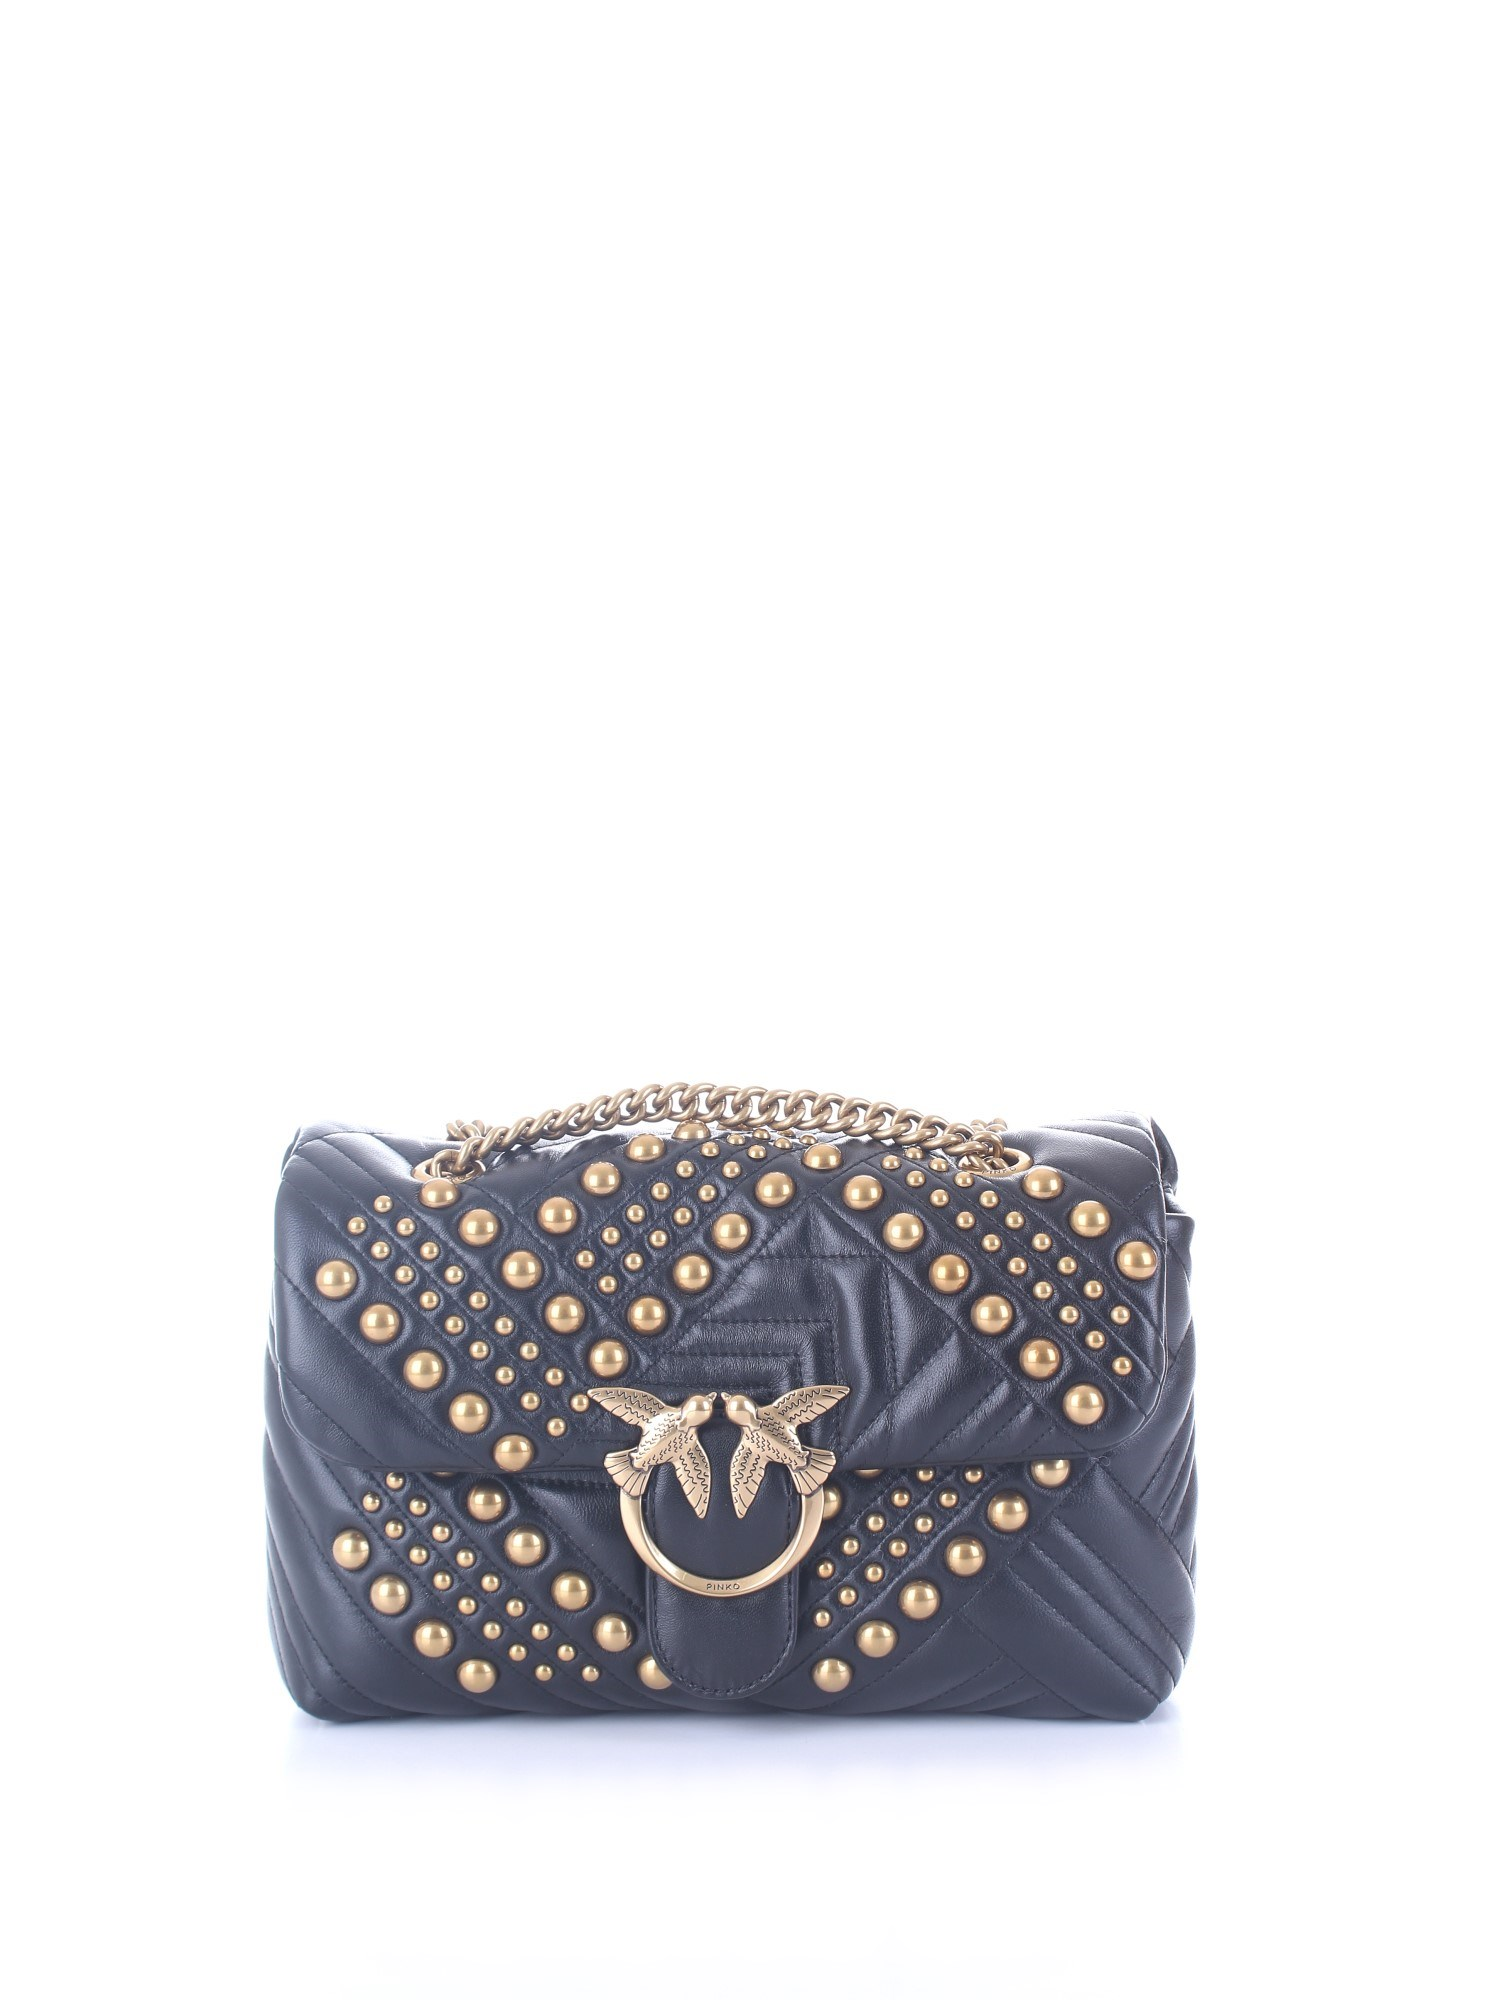 PINKO 1P2258 Y6YW/Z99  Accessories Women CLUTCH